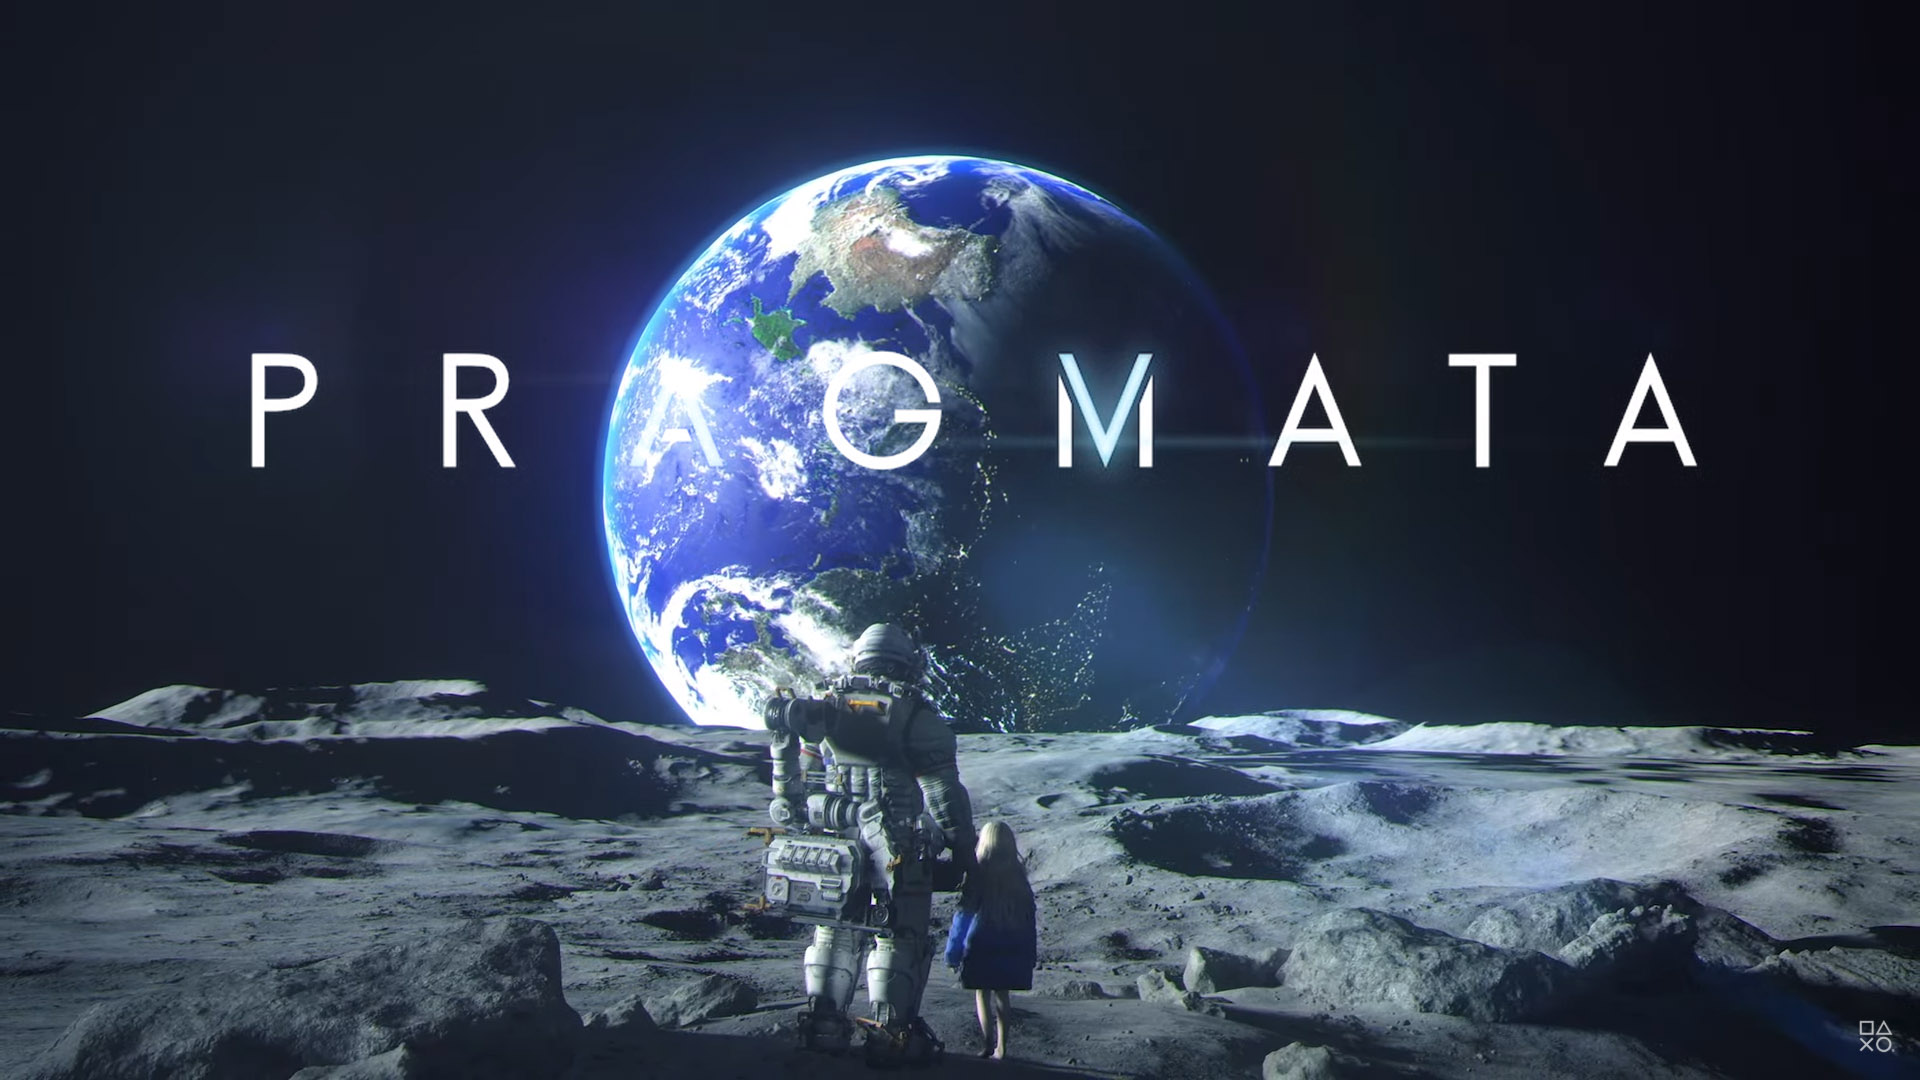 Pragmata logo on scene of both characters standing on moon looking at earth